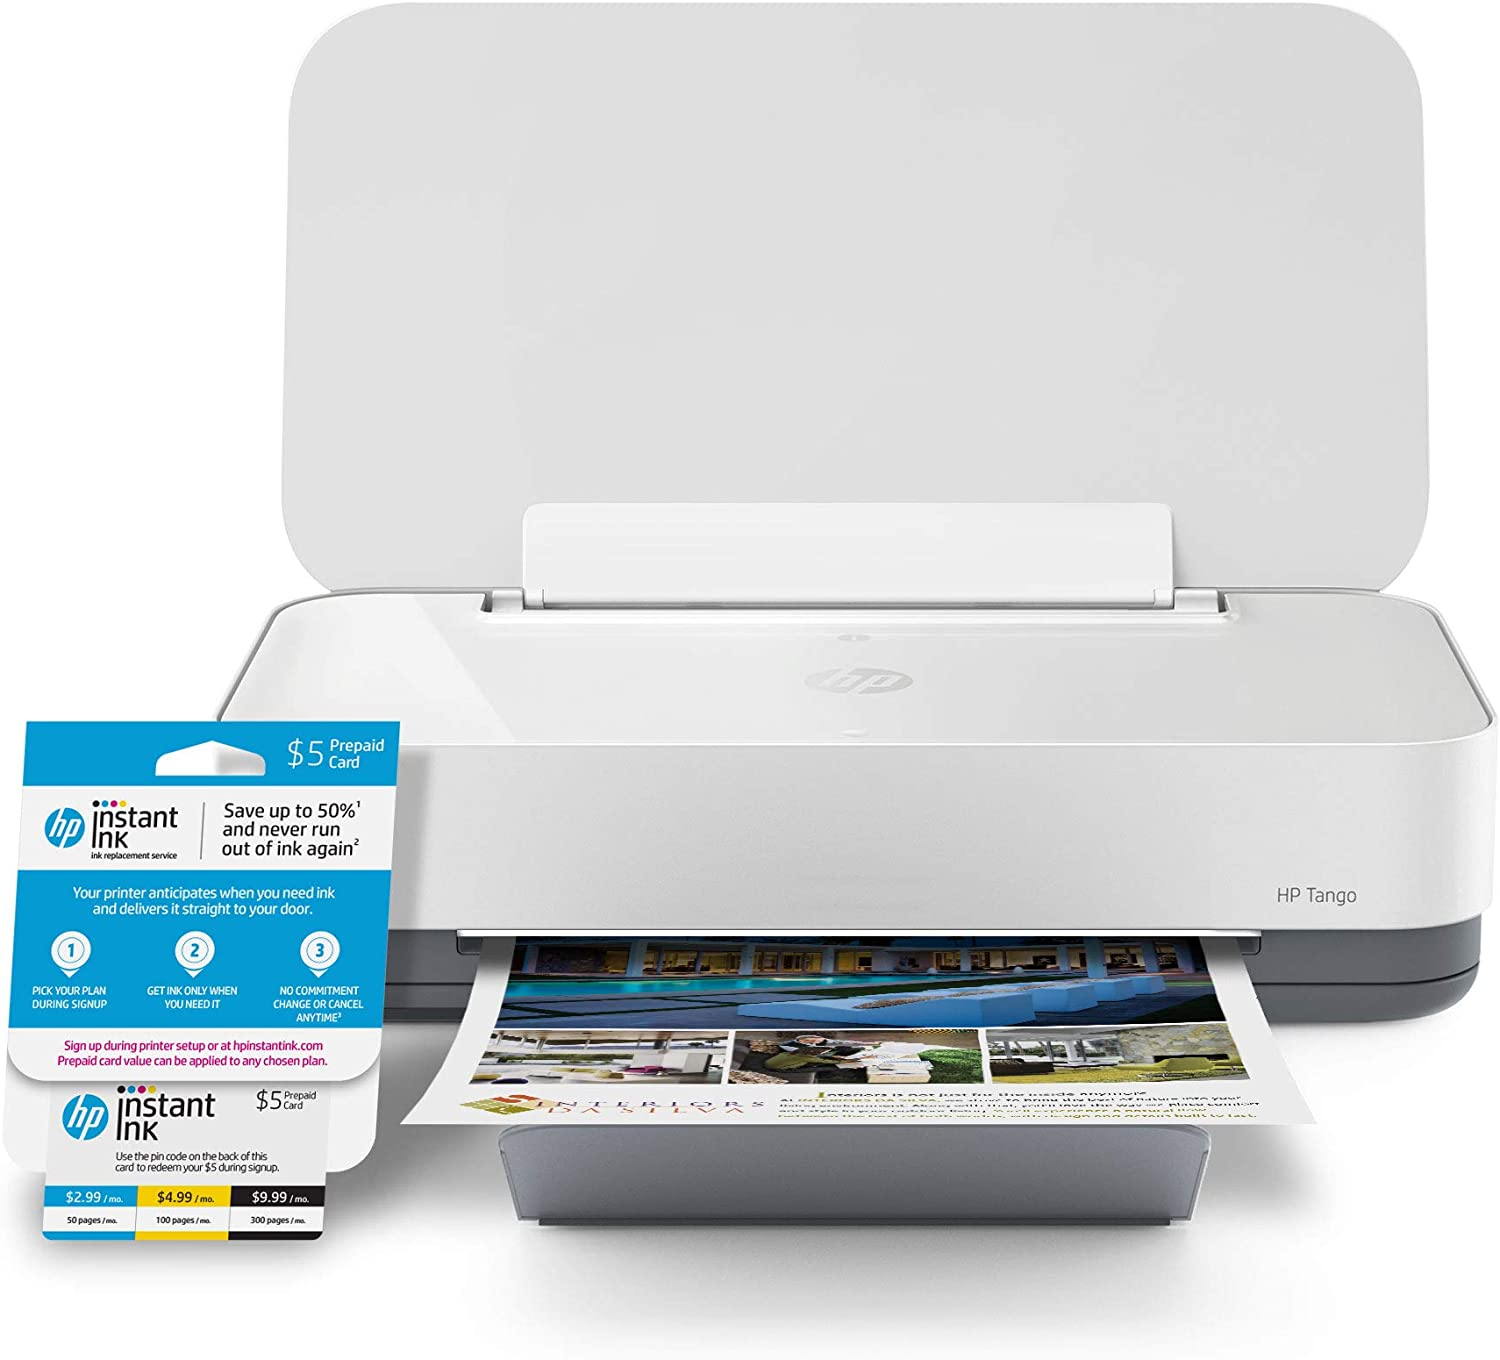 HP Tango Smart Home Printer with Instant Ink 5 Dollar Prepaid Card, Certified Works with Alexa (2RY54A)